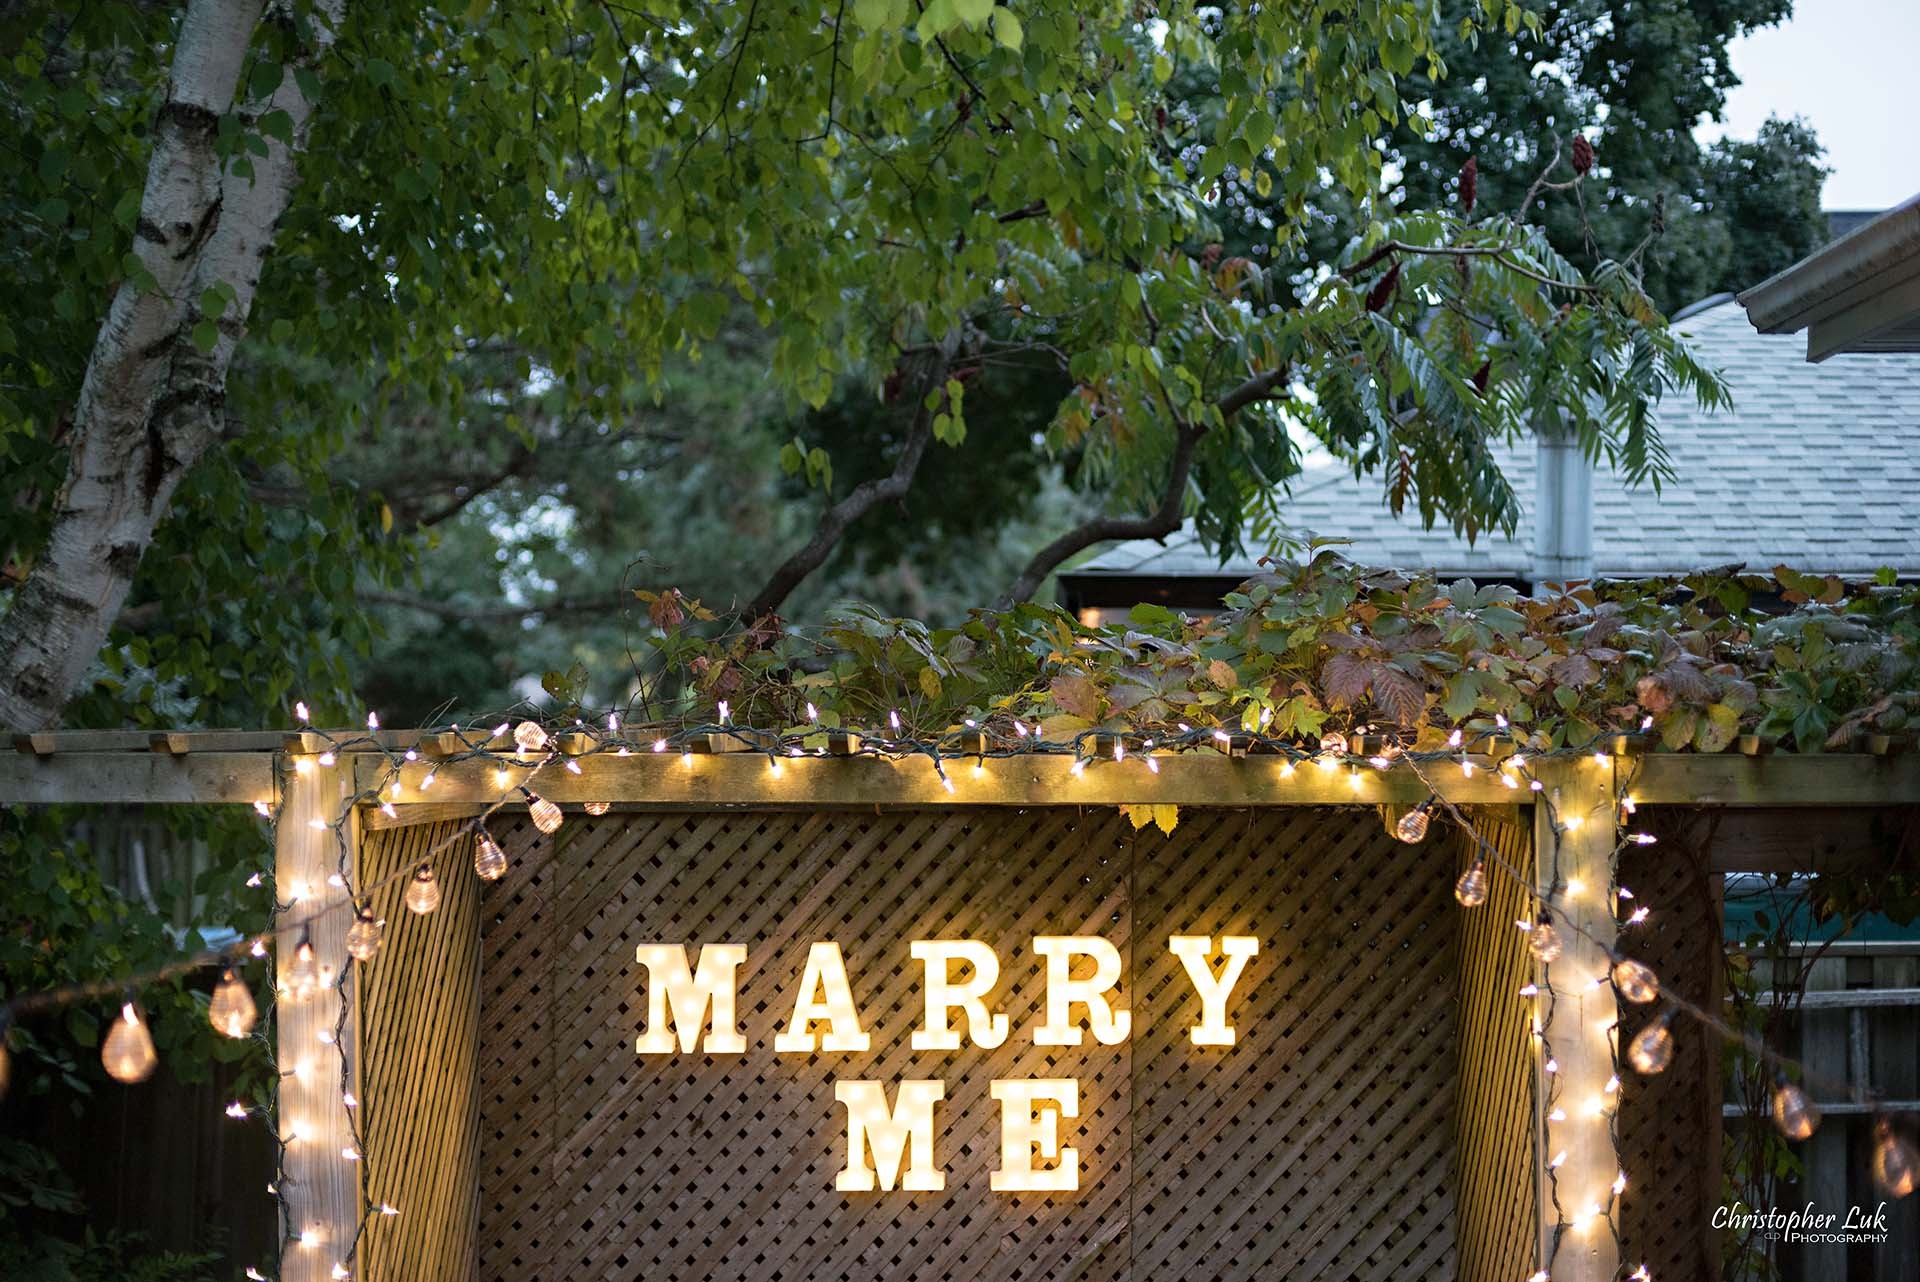 Christopher Luk Toronto Wedding Photographer - Backyard Surprise Proposal Engaged Engagement Gazebo Christmas Fairy Twinkle Lights Flower Petals Marry Me Wide Lights Marquee Letters